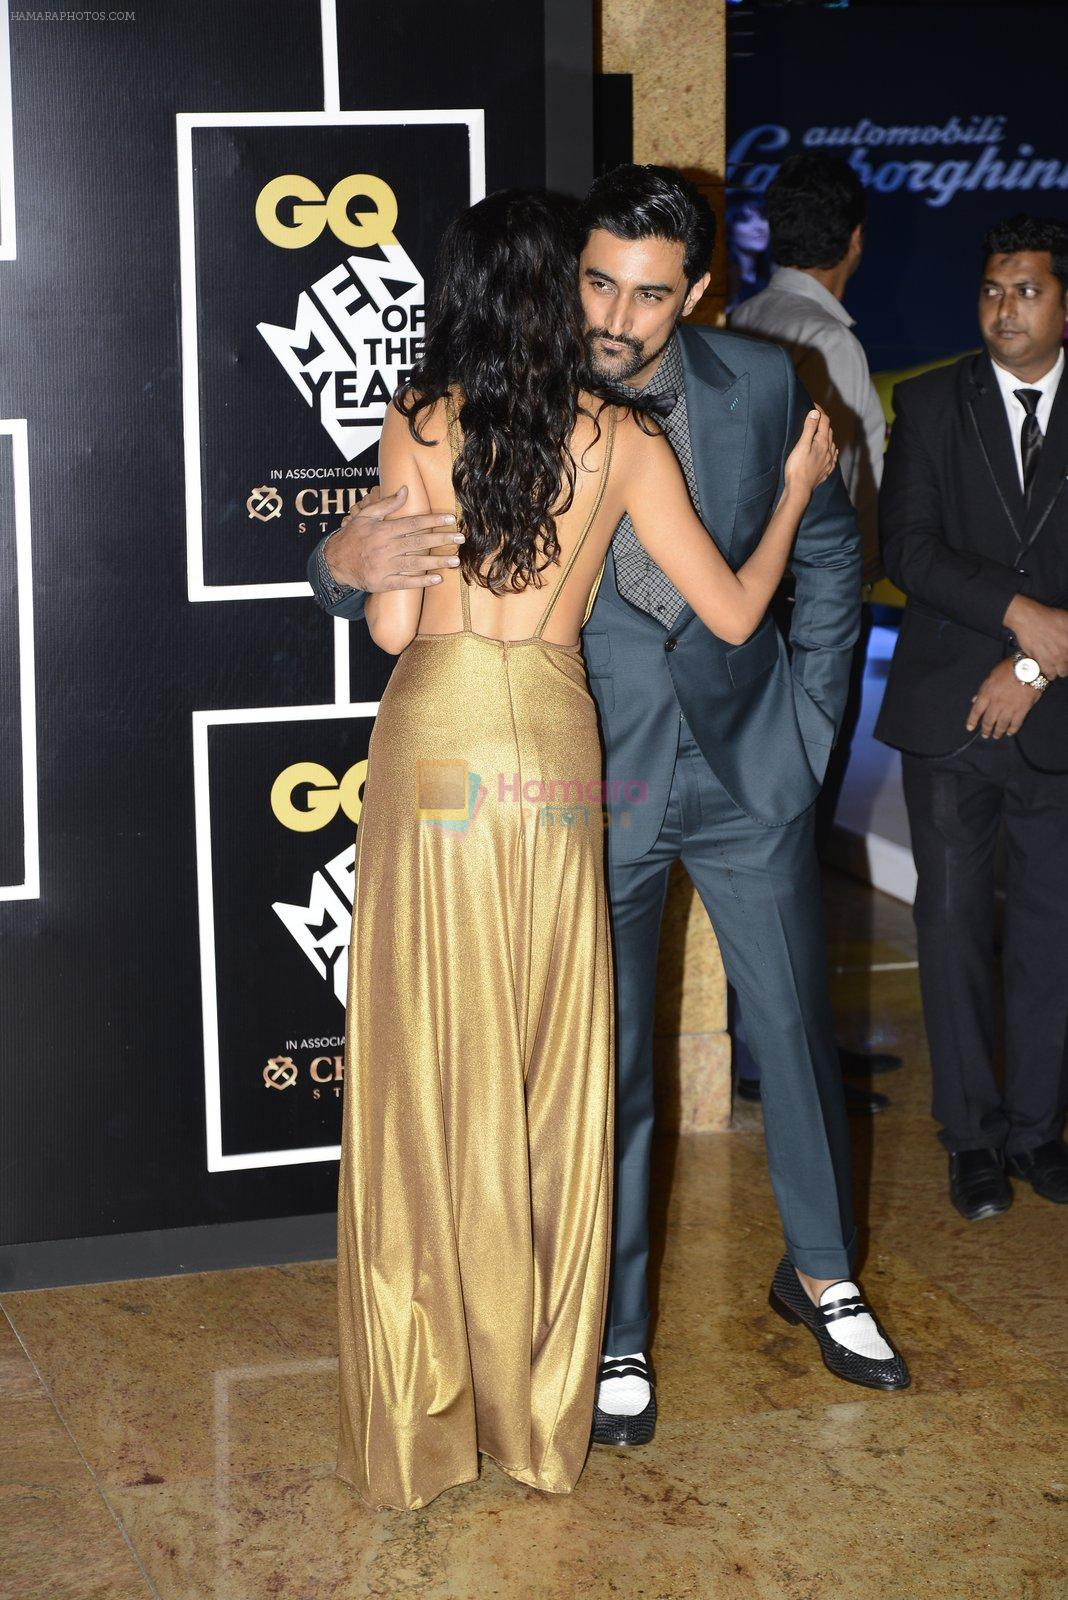 Sarah Jane Dias at GQ MEN OF THE YEAR on 27th Sept 2016